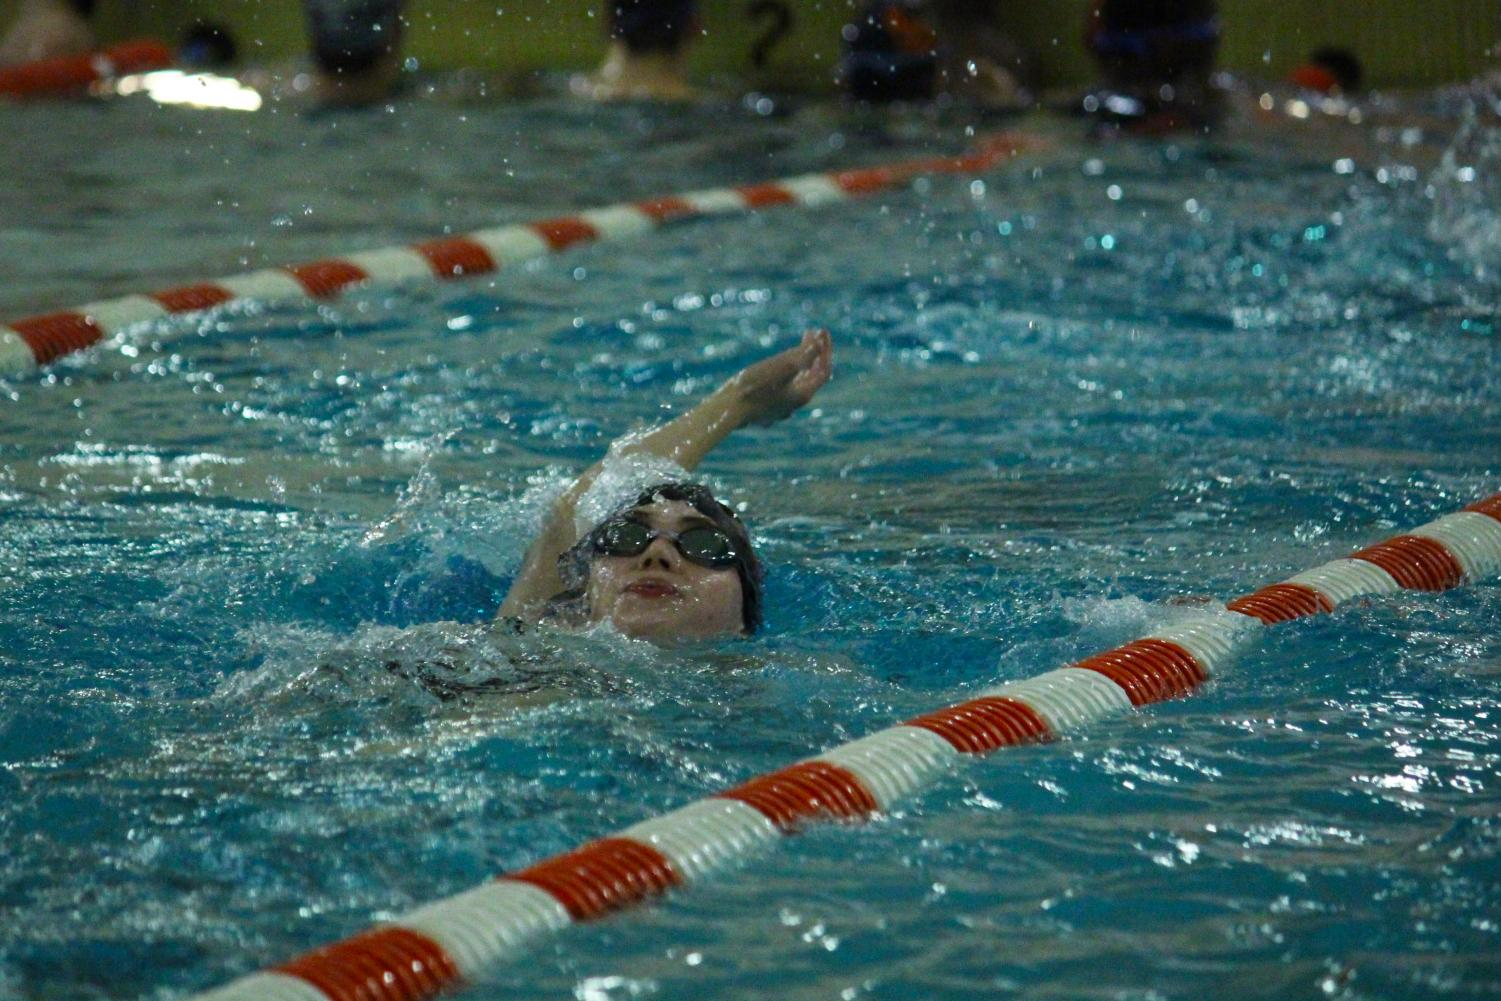 Senior Tommy Guddal practices the backstroke Nov. 28. The boys' swimming team is preparing for their first conference relay at Richfeild Middle School Dec. 7.